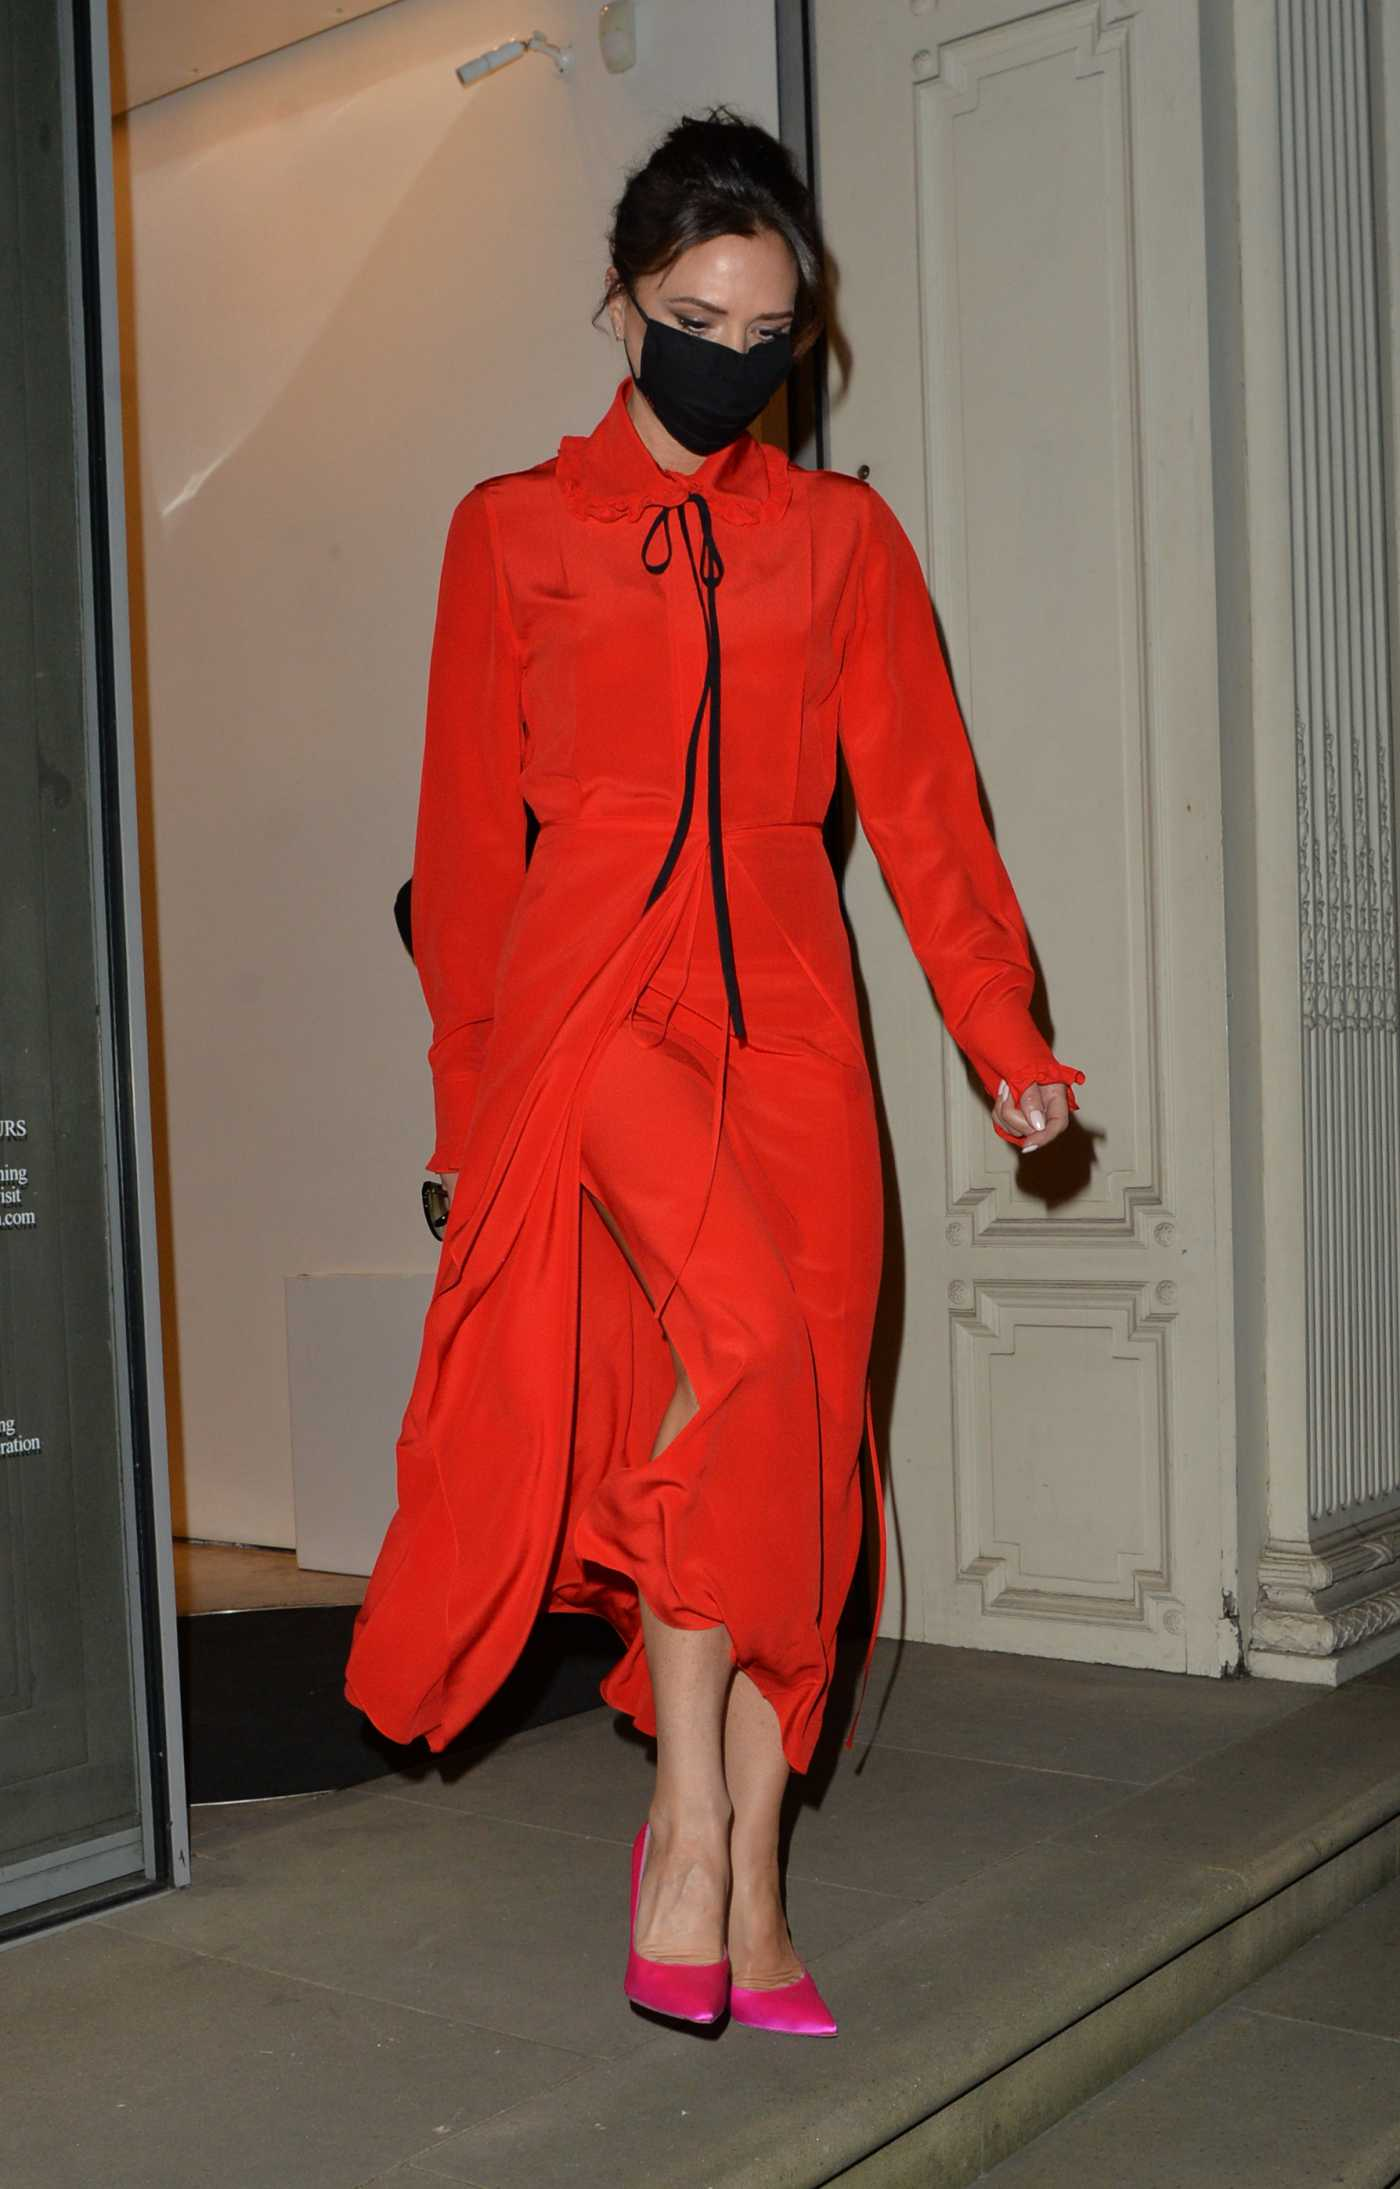 Victoria Beckham in a Red Dress Leaves Her Dover Street Shop in London 12/07/2020